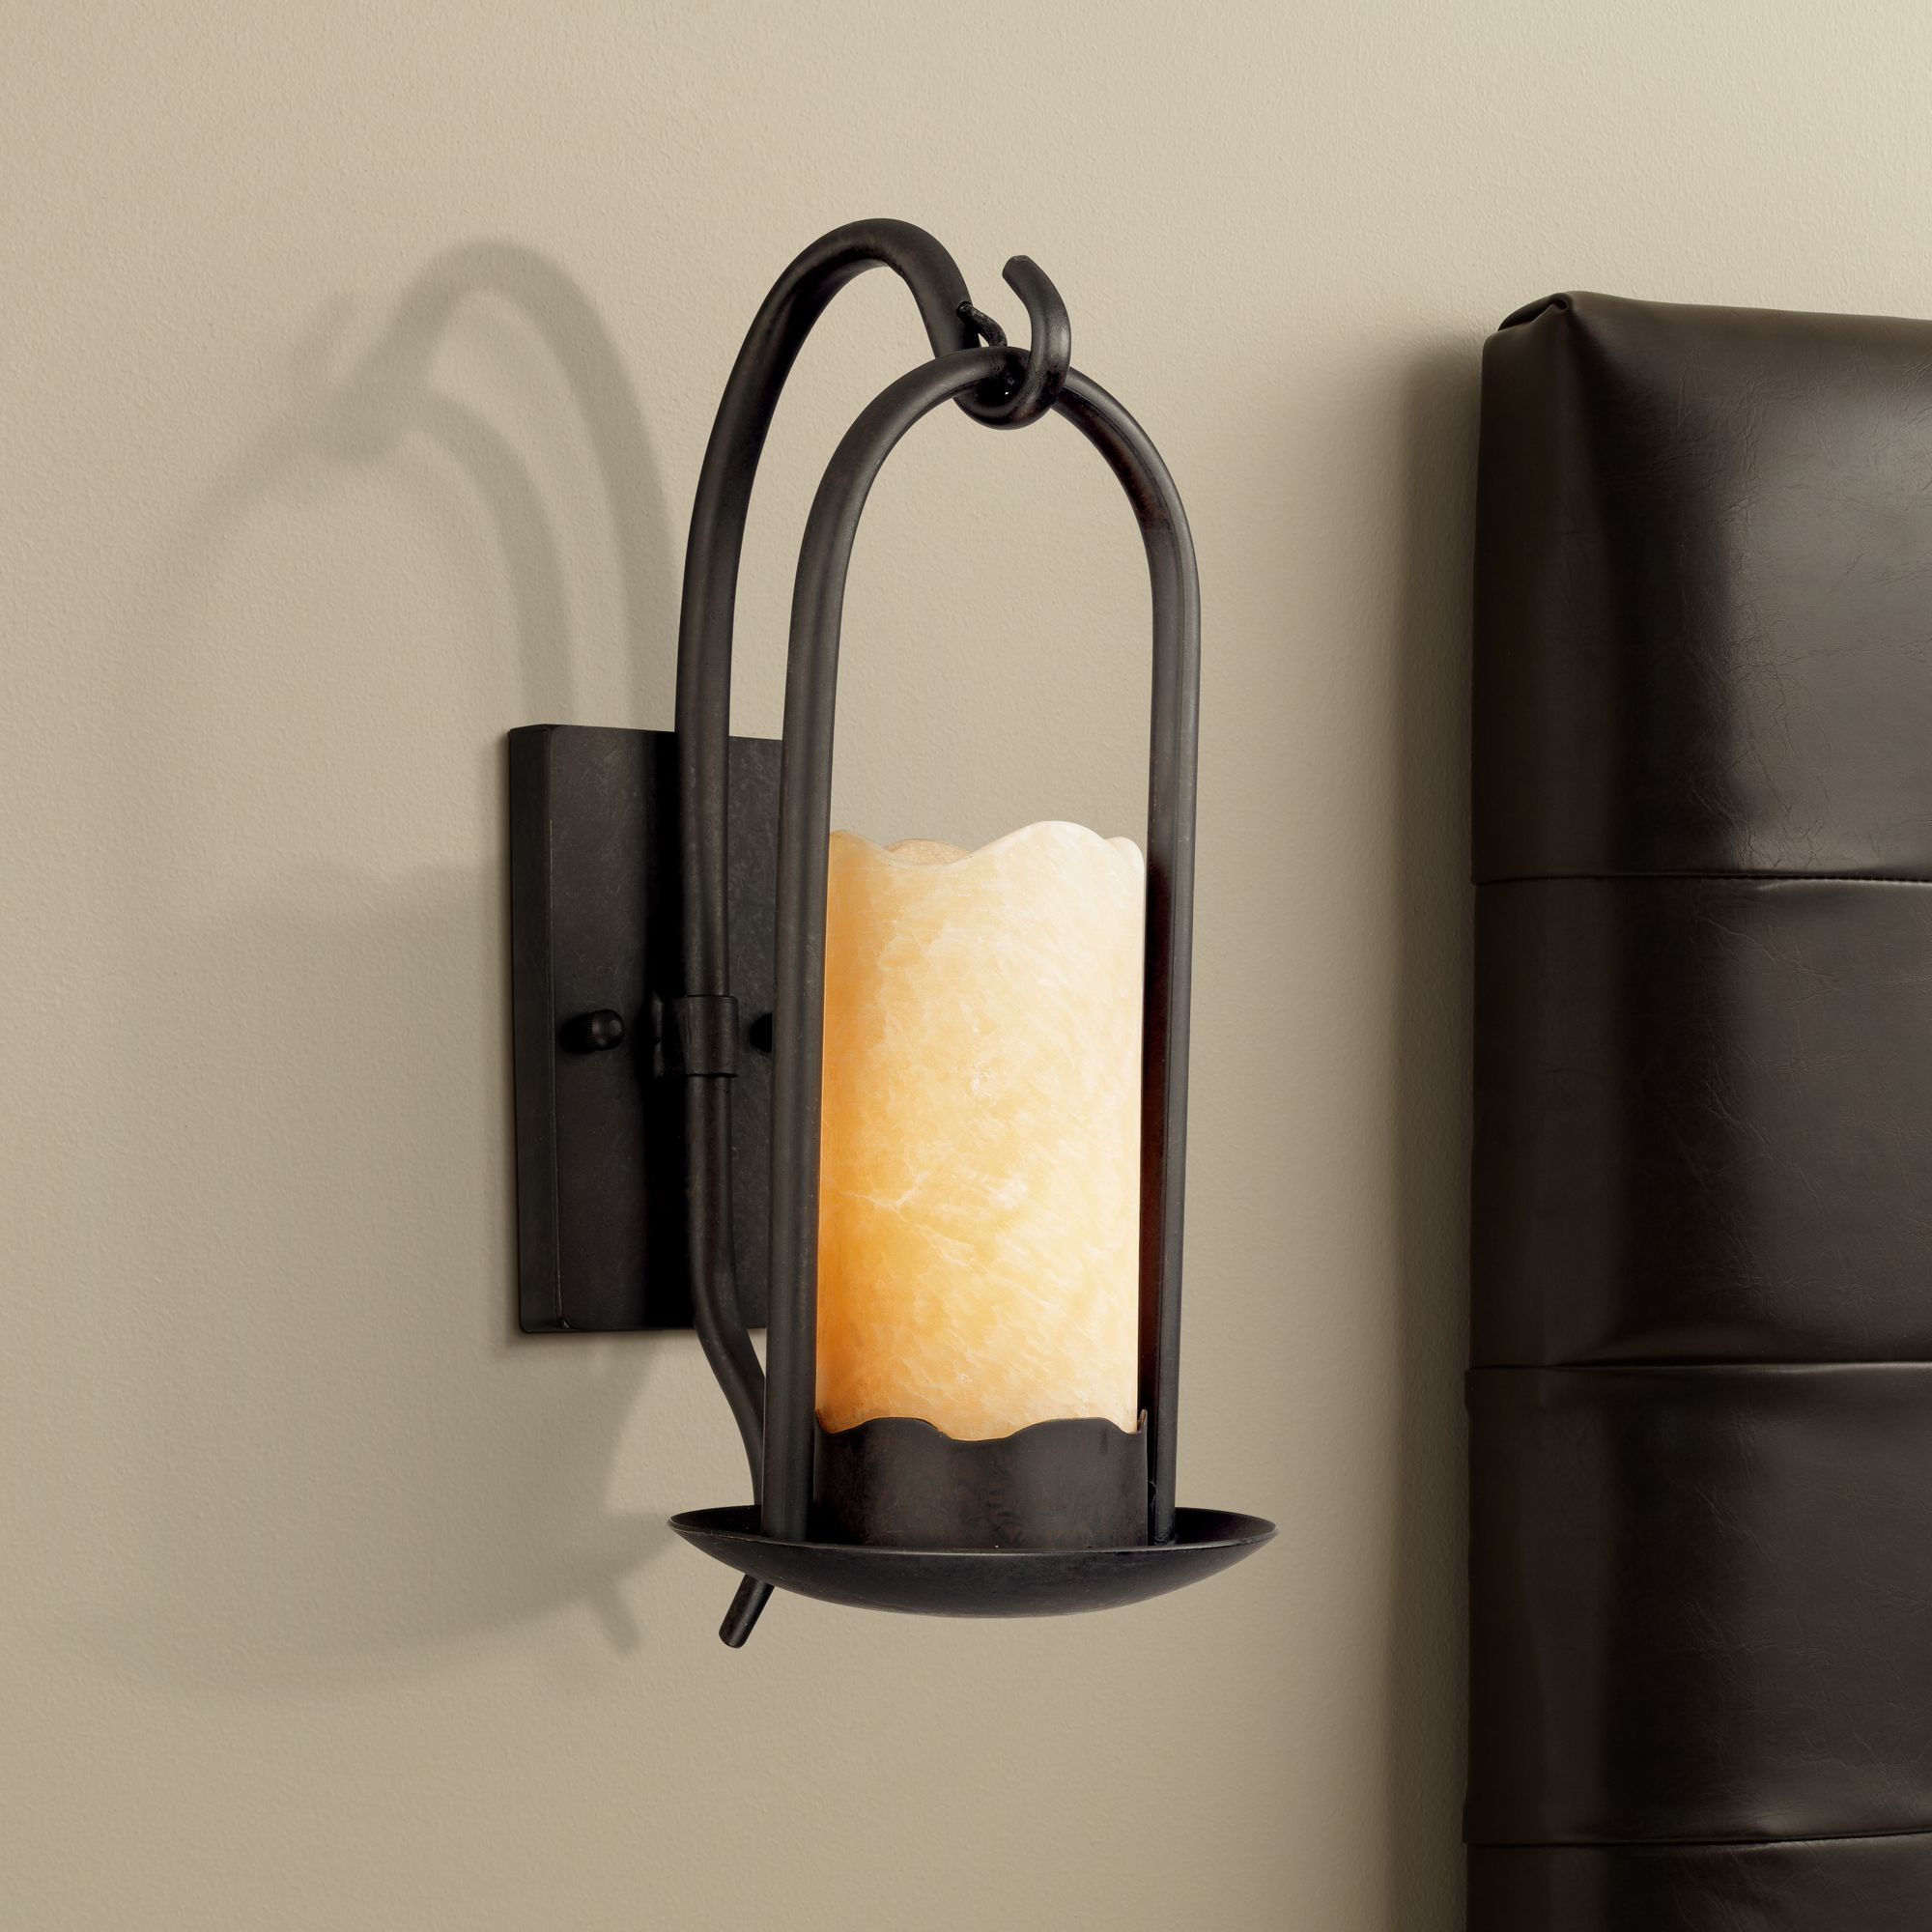 Hanging Onyx Faux Candle Wall Sconce  51685  Lamps Plus